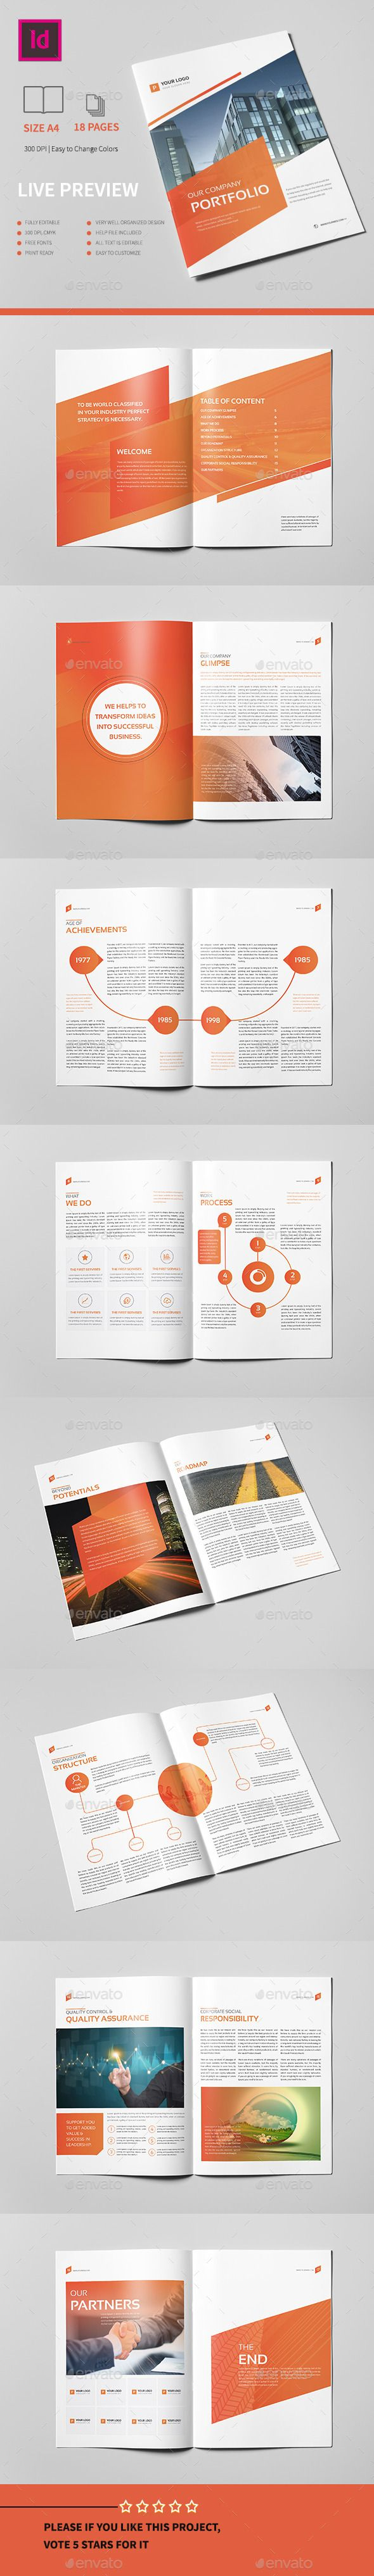 Corporate Portfolio Brochure 18 pages A4 Template InDesign INDD #design Download: http://graphicriver.net/item/corporate-portfolio-brochure-18-pages-a4-/13408064?ref=ksioks